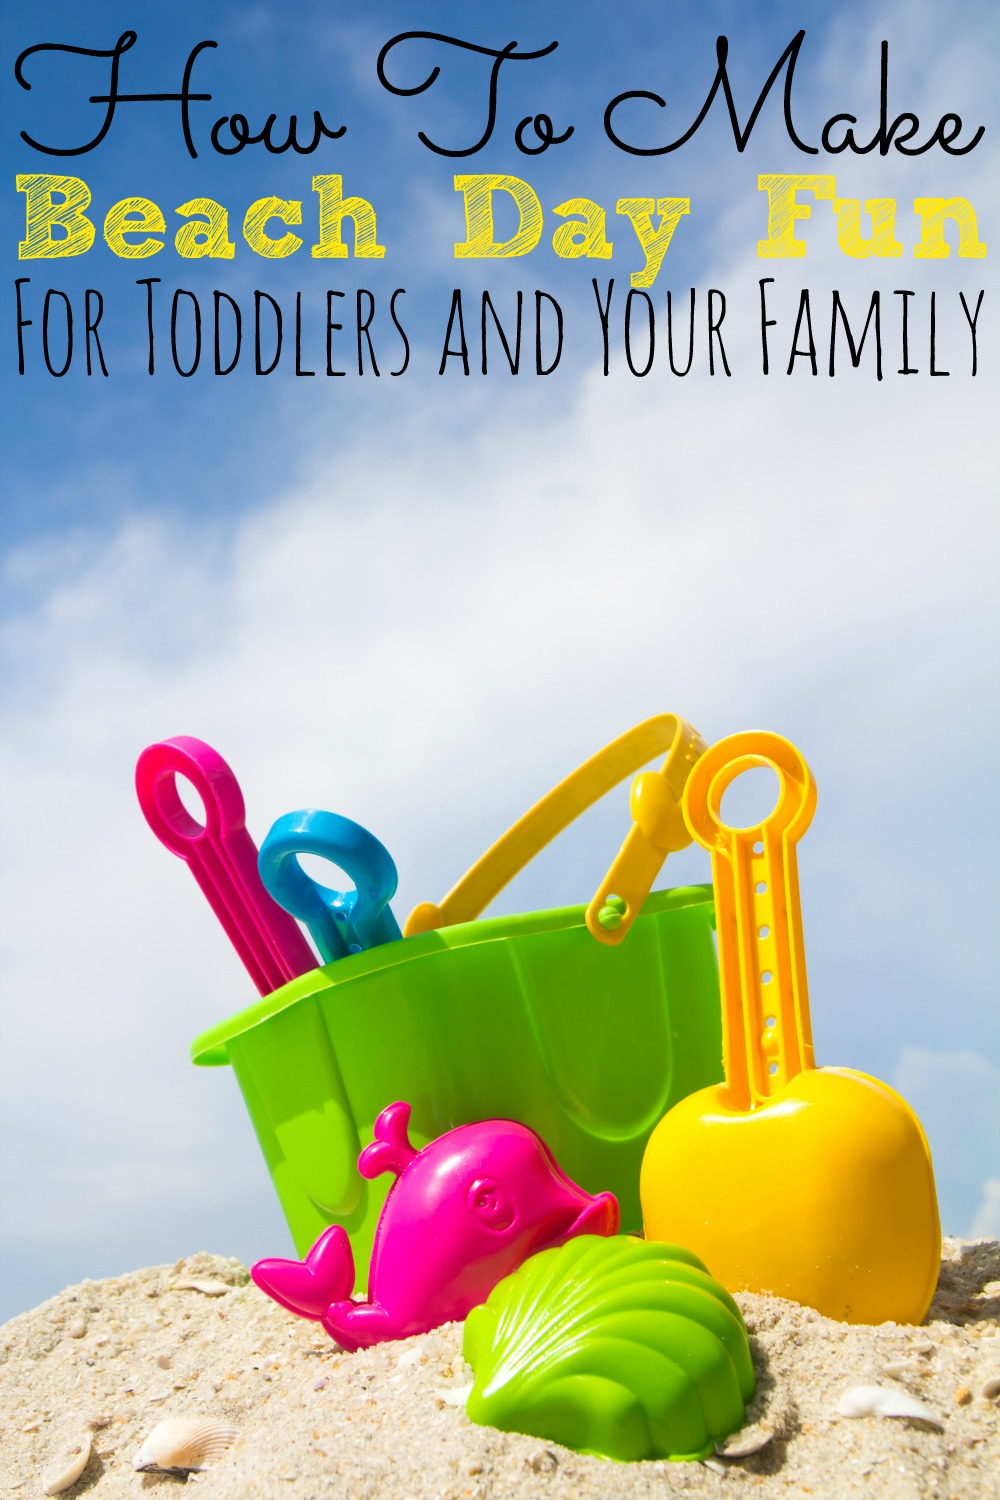 How To Make Beach Day Fun For Toddlers - abccreativelearning.com